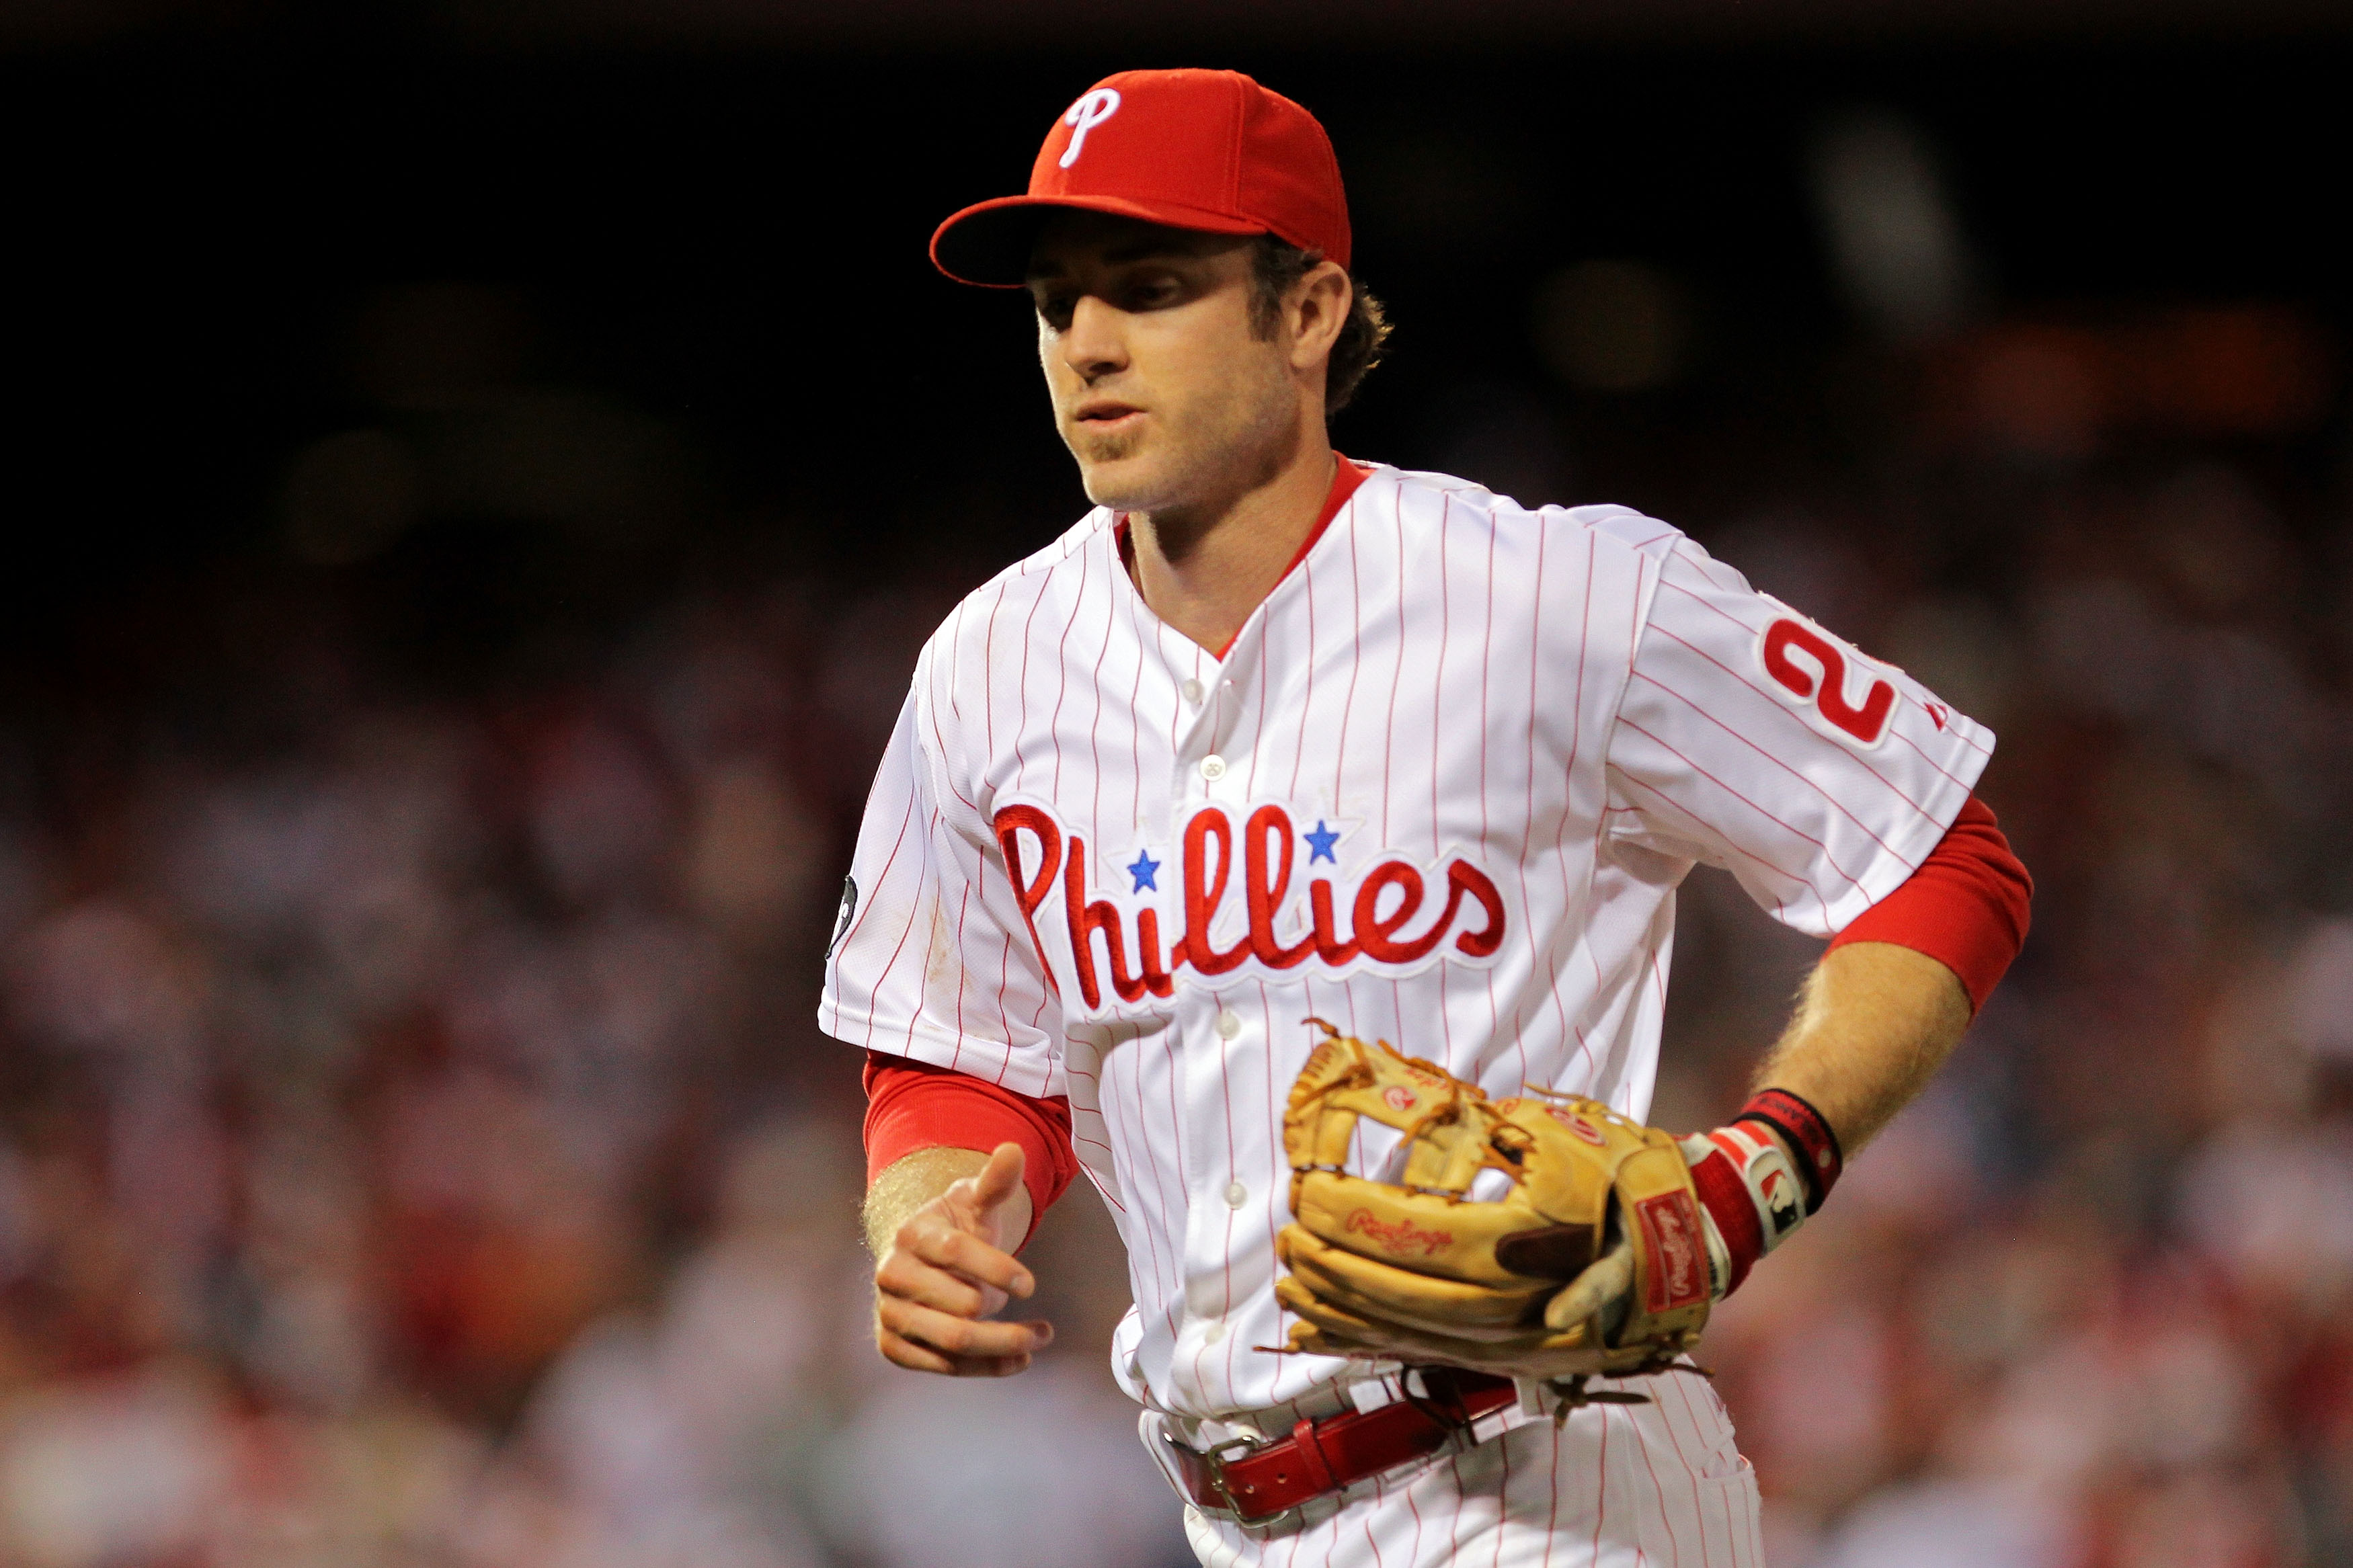 PHILADELPHIA - OCTOBER 23:  Chase Utley #26 of the Philadelphia Phillies runs off the field after turing a double play against the San Francisco Giants in Game Six of the NLCS during the 2010 MLB Playoffs at Citizens Bank Park on October 23, 2010 in Phila